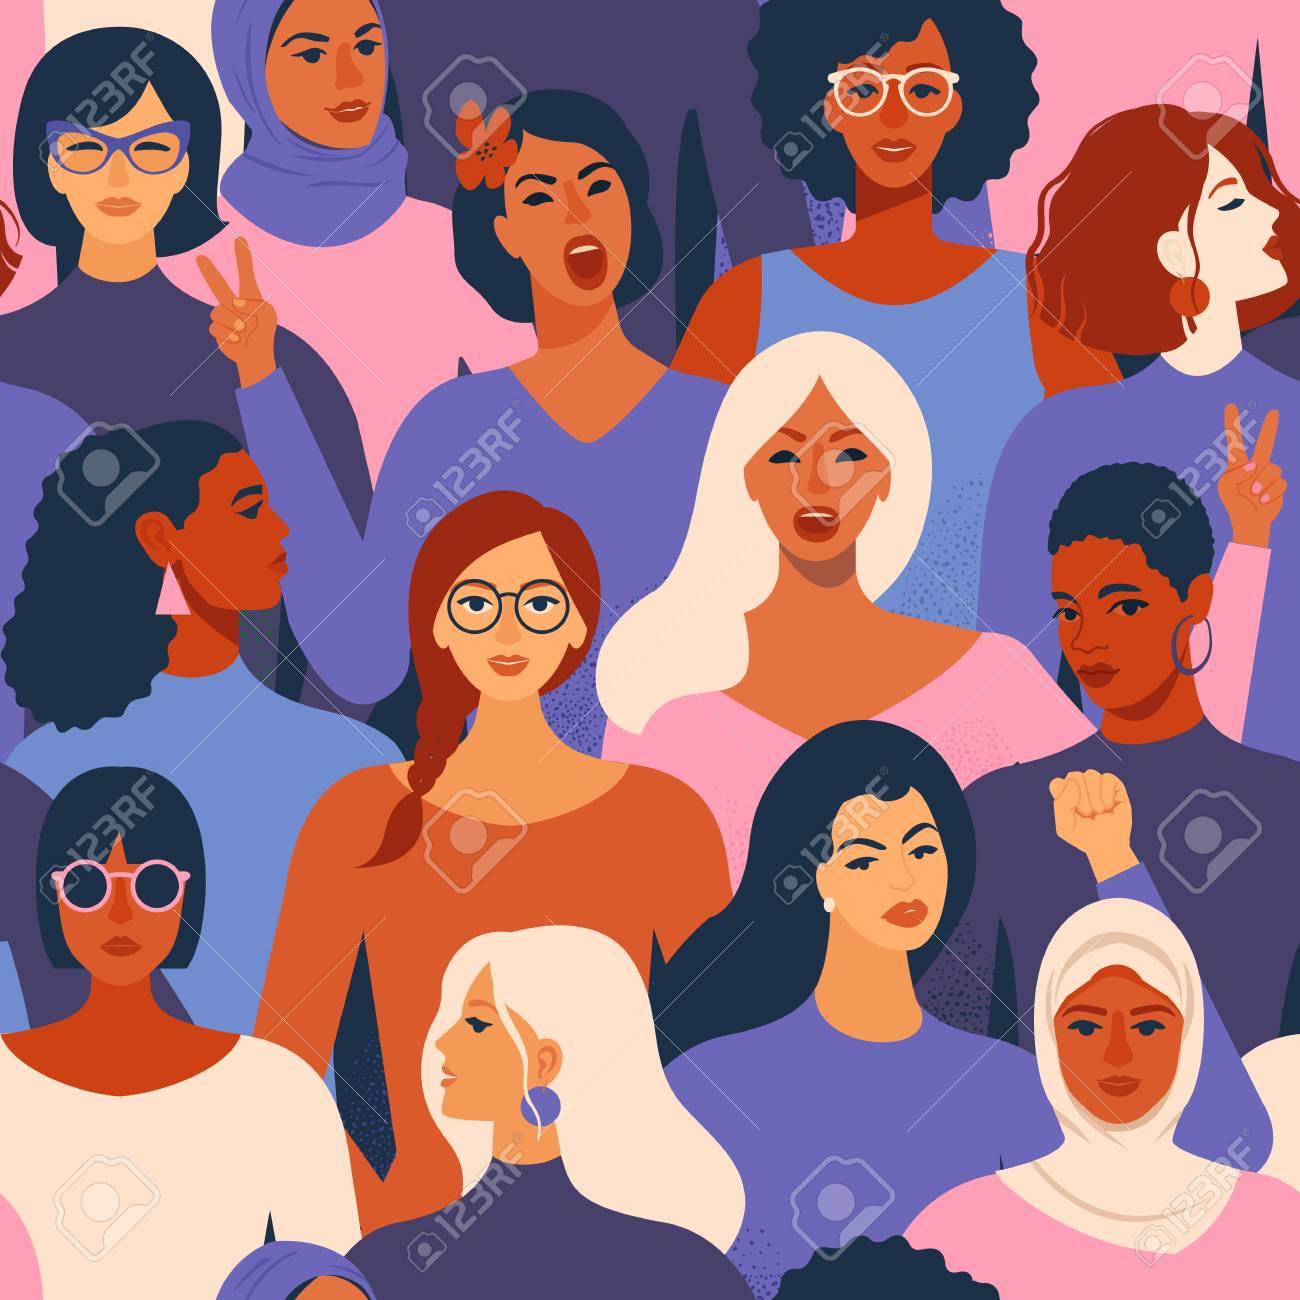 Female diverse faces of different ethnicity seamless pattern. Women empowerment movement pattern International womens day graphic in vector. - 113888297